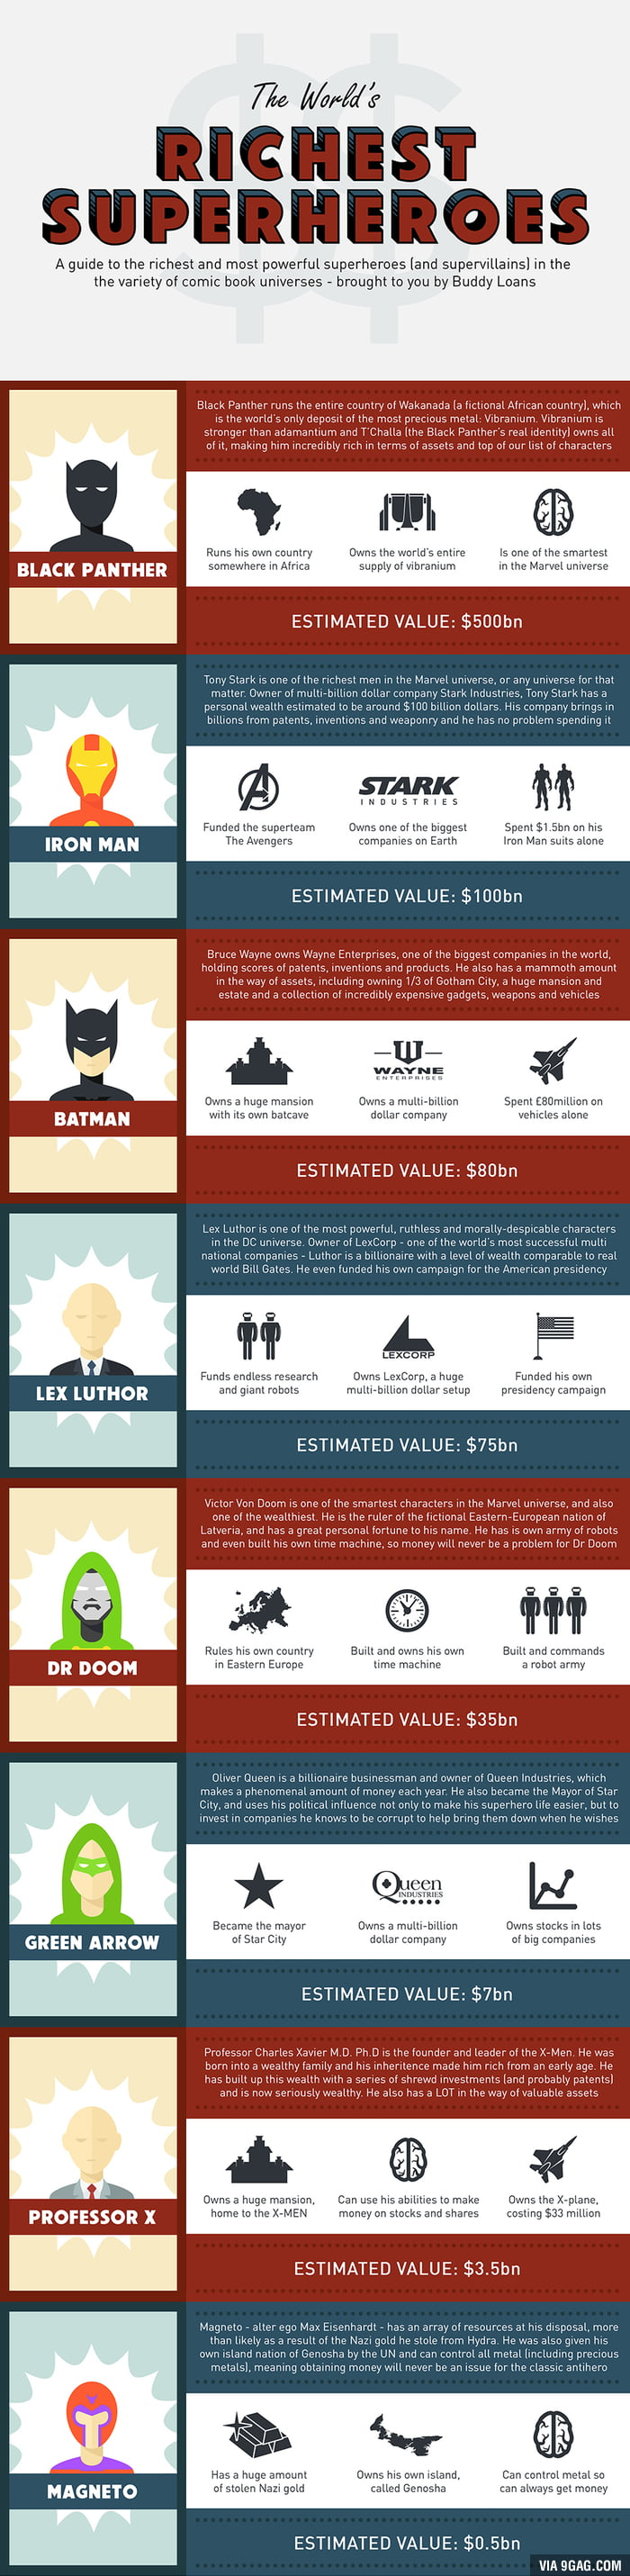 The World's Richest Superheroes